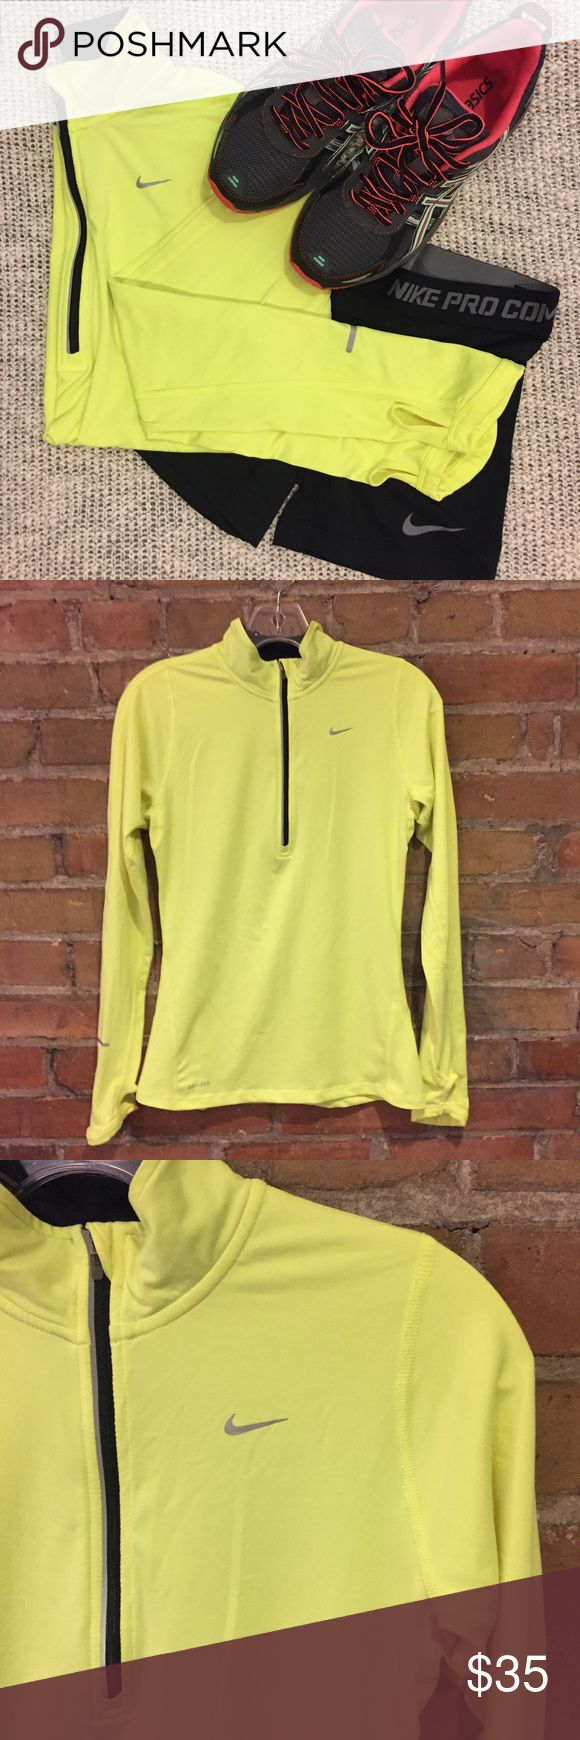 NIKE DRI-FIT Bright Yellow Zip-Up Long Sleeve Top Nike logo on left side of chest, thumb holes. Super soft on the inside, nice and smooth on the outside. Really bright yellow (last pic of back side the best)! Worn only once or twice in spring weather. This running shirt is in great condition. Measurements on request 💕 Nike Tops Sweatshirts & Hoodies